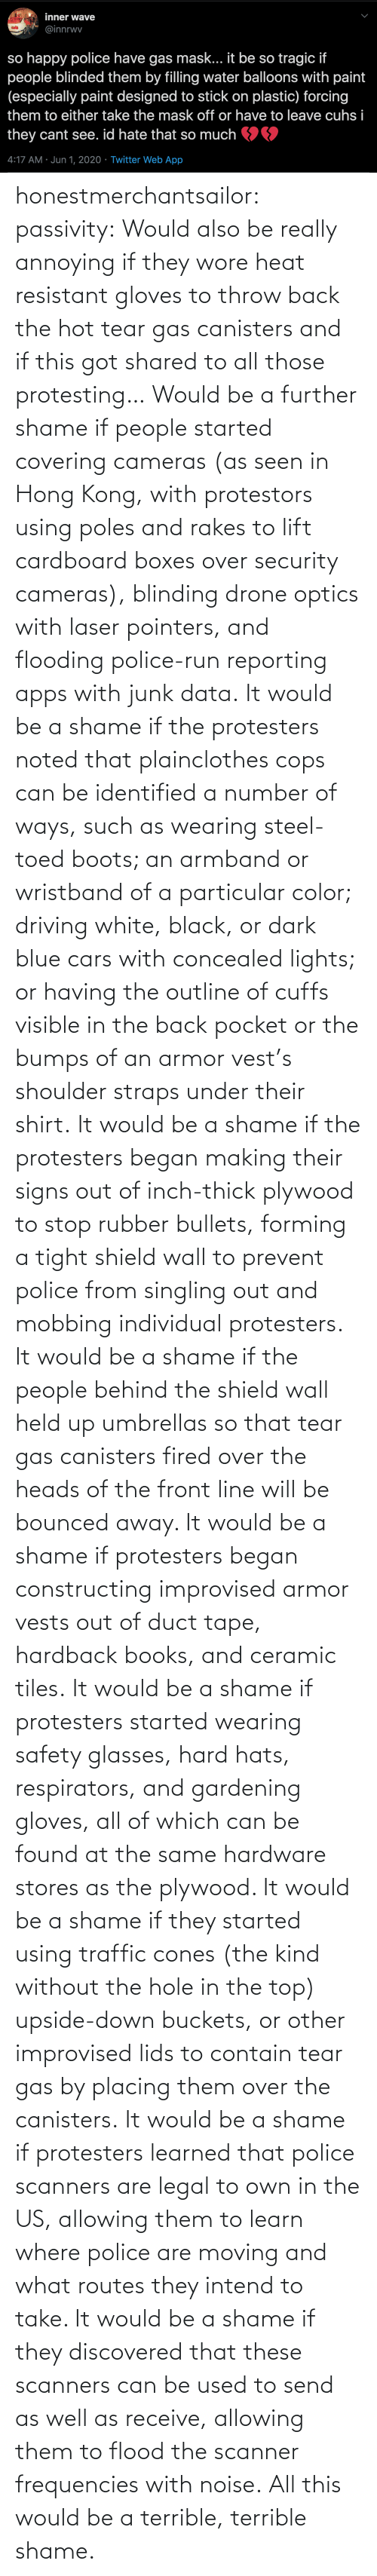 All Of: honestmerchantsailor: passivity: Would also be really annoying if they wore heat resistant gloves to throw back the hot tear gas canisters and if this got shared to all those protesting… Would be a further shame if people started covering cameras (as seen in Hong Kong, with protestors using poles and rakes to lift cardboard boxes over security cameras), blinding drone optics with laser pointers, and flooding police-run reporting apps with junk data. It would be a shame if the protesters noted that plainclothes cops can be identified a number of ways, such as wearing steel-toed boots; an armband or wristband of a particular color; driving white, black, or dark blue cars with concealed lights; or having the outline of cuffs visible in the back pocket or the bumps of an armor vest's shoulder straps under their shirt. It would be a shame if the protesters began making their signs out of inch-thick plywood to stop rubber bullets, forming a tight shield wall to prevent police from singling out and mobbing individual protesters. It would be a shame if the people behind the shield wall held up umbrellas so that tear gas canisters fired over the heads of the front line will be bounced away. It would be a shame if protesters began constructing improvised armor vests out of duct tape, hardback books, and ceramic tiles. It would be a shame if protesters started wearing safety glasses, hard hats, respirators, and gardening gloves, all of which can be found at the same hardware stores as the plywood. It would be a shame if they started using traffic cones (the kind without the hole in the top) upside-down buckets, or other improvised lids to contain tear gas by placing them over the canisters. It would be a shame if protesters learned that police scanners are legal to own in the US, allowing them to learn where police are moving and what routes they intend to take. It would be a shame if they discovered that these scanners can be used to send as well as receive, allowing them to flood the scanner frequencies with noise. All this would be a terrible, terrible shame.